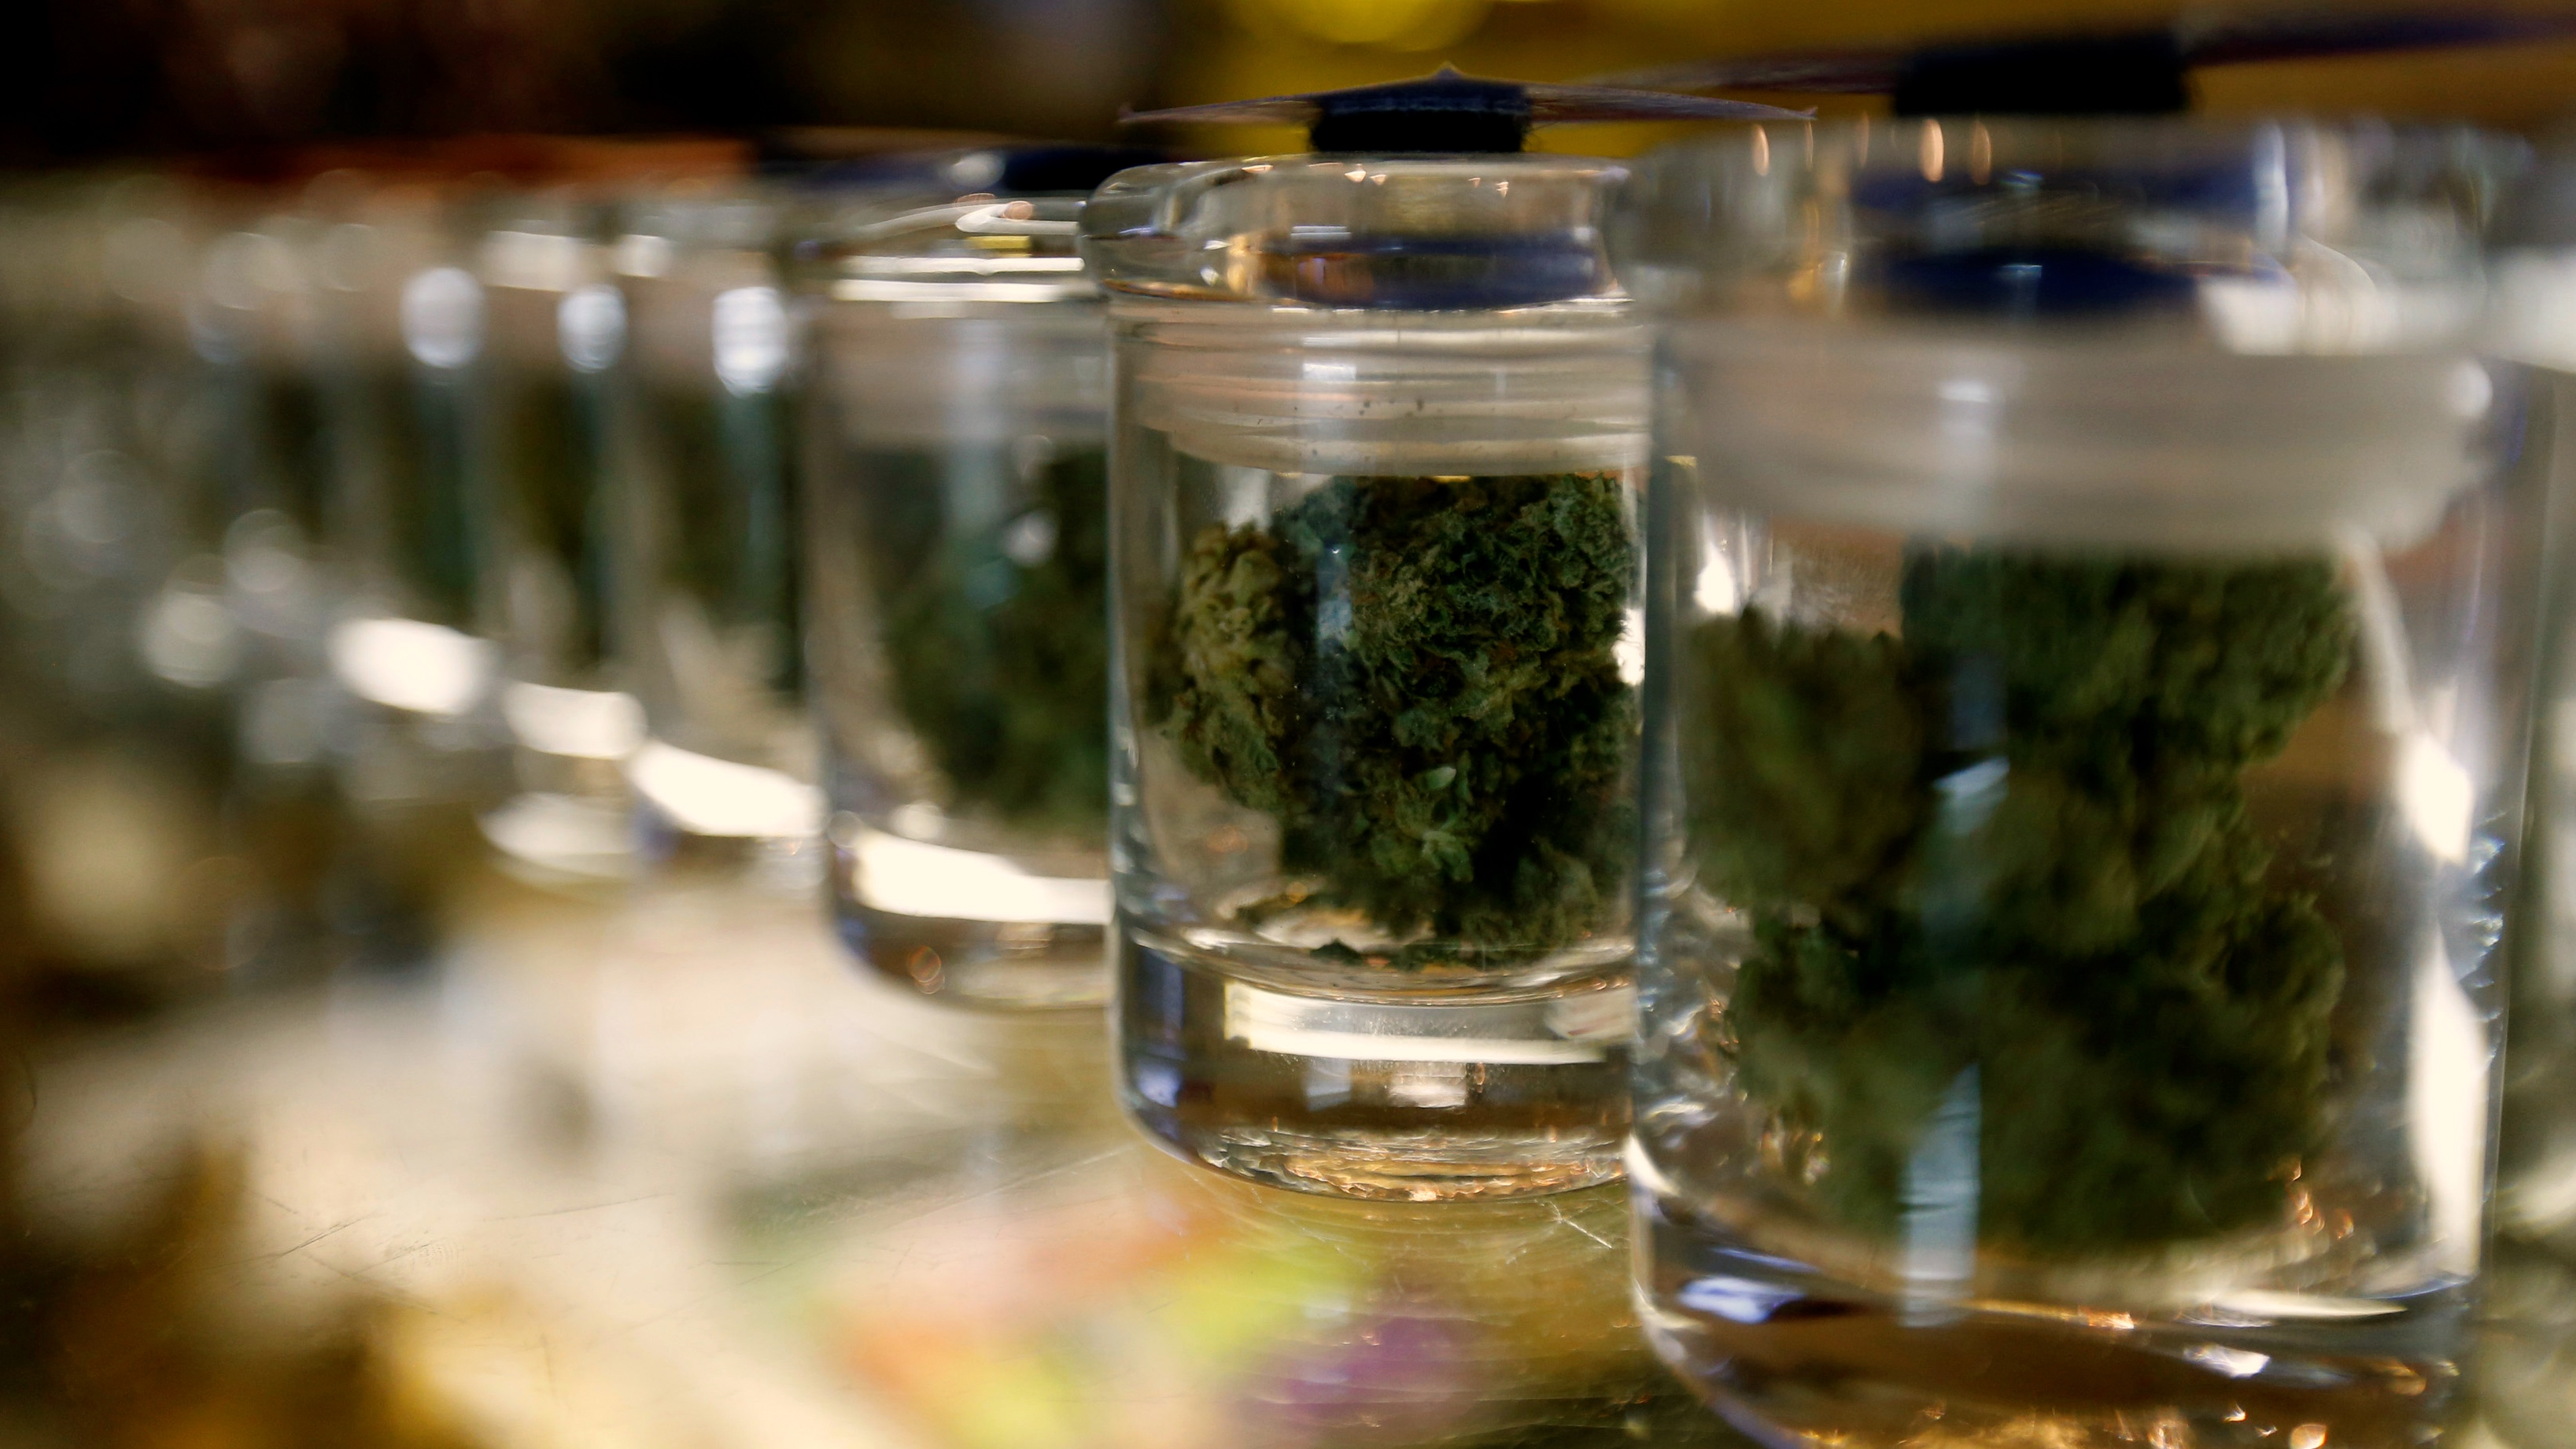 Medicinal marijuana buds in jars.